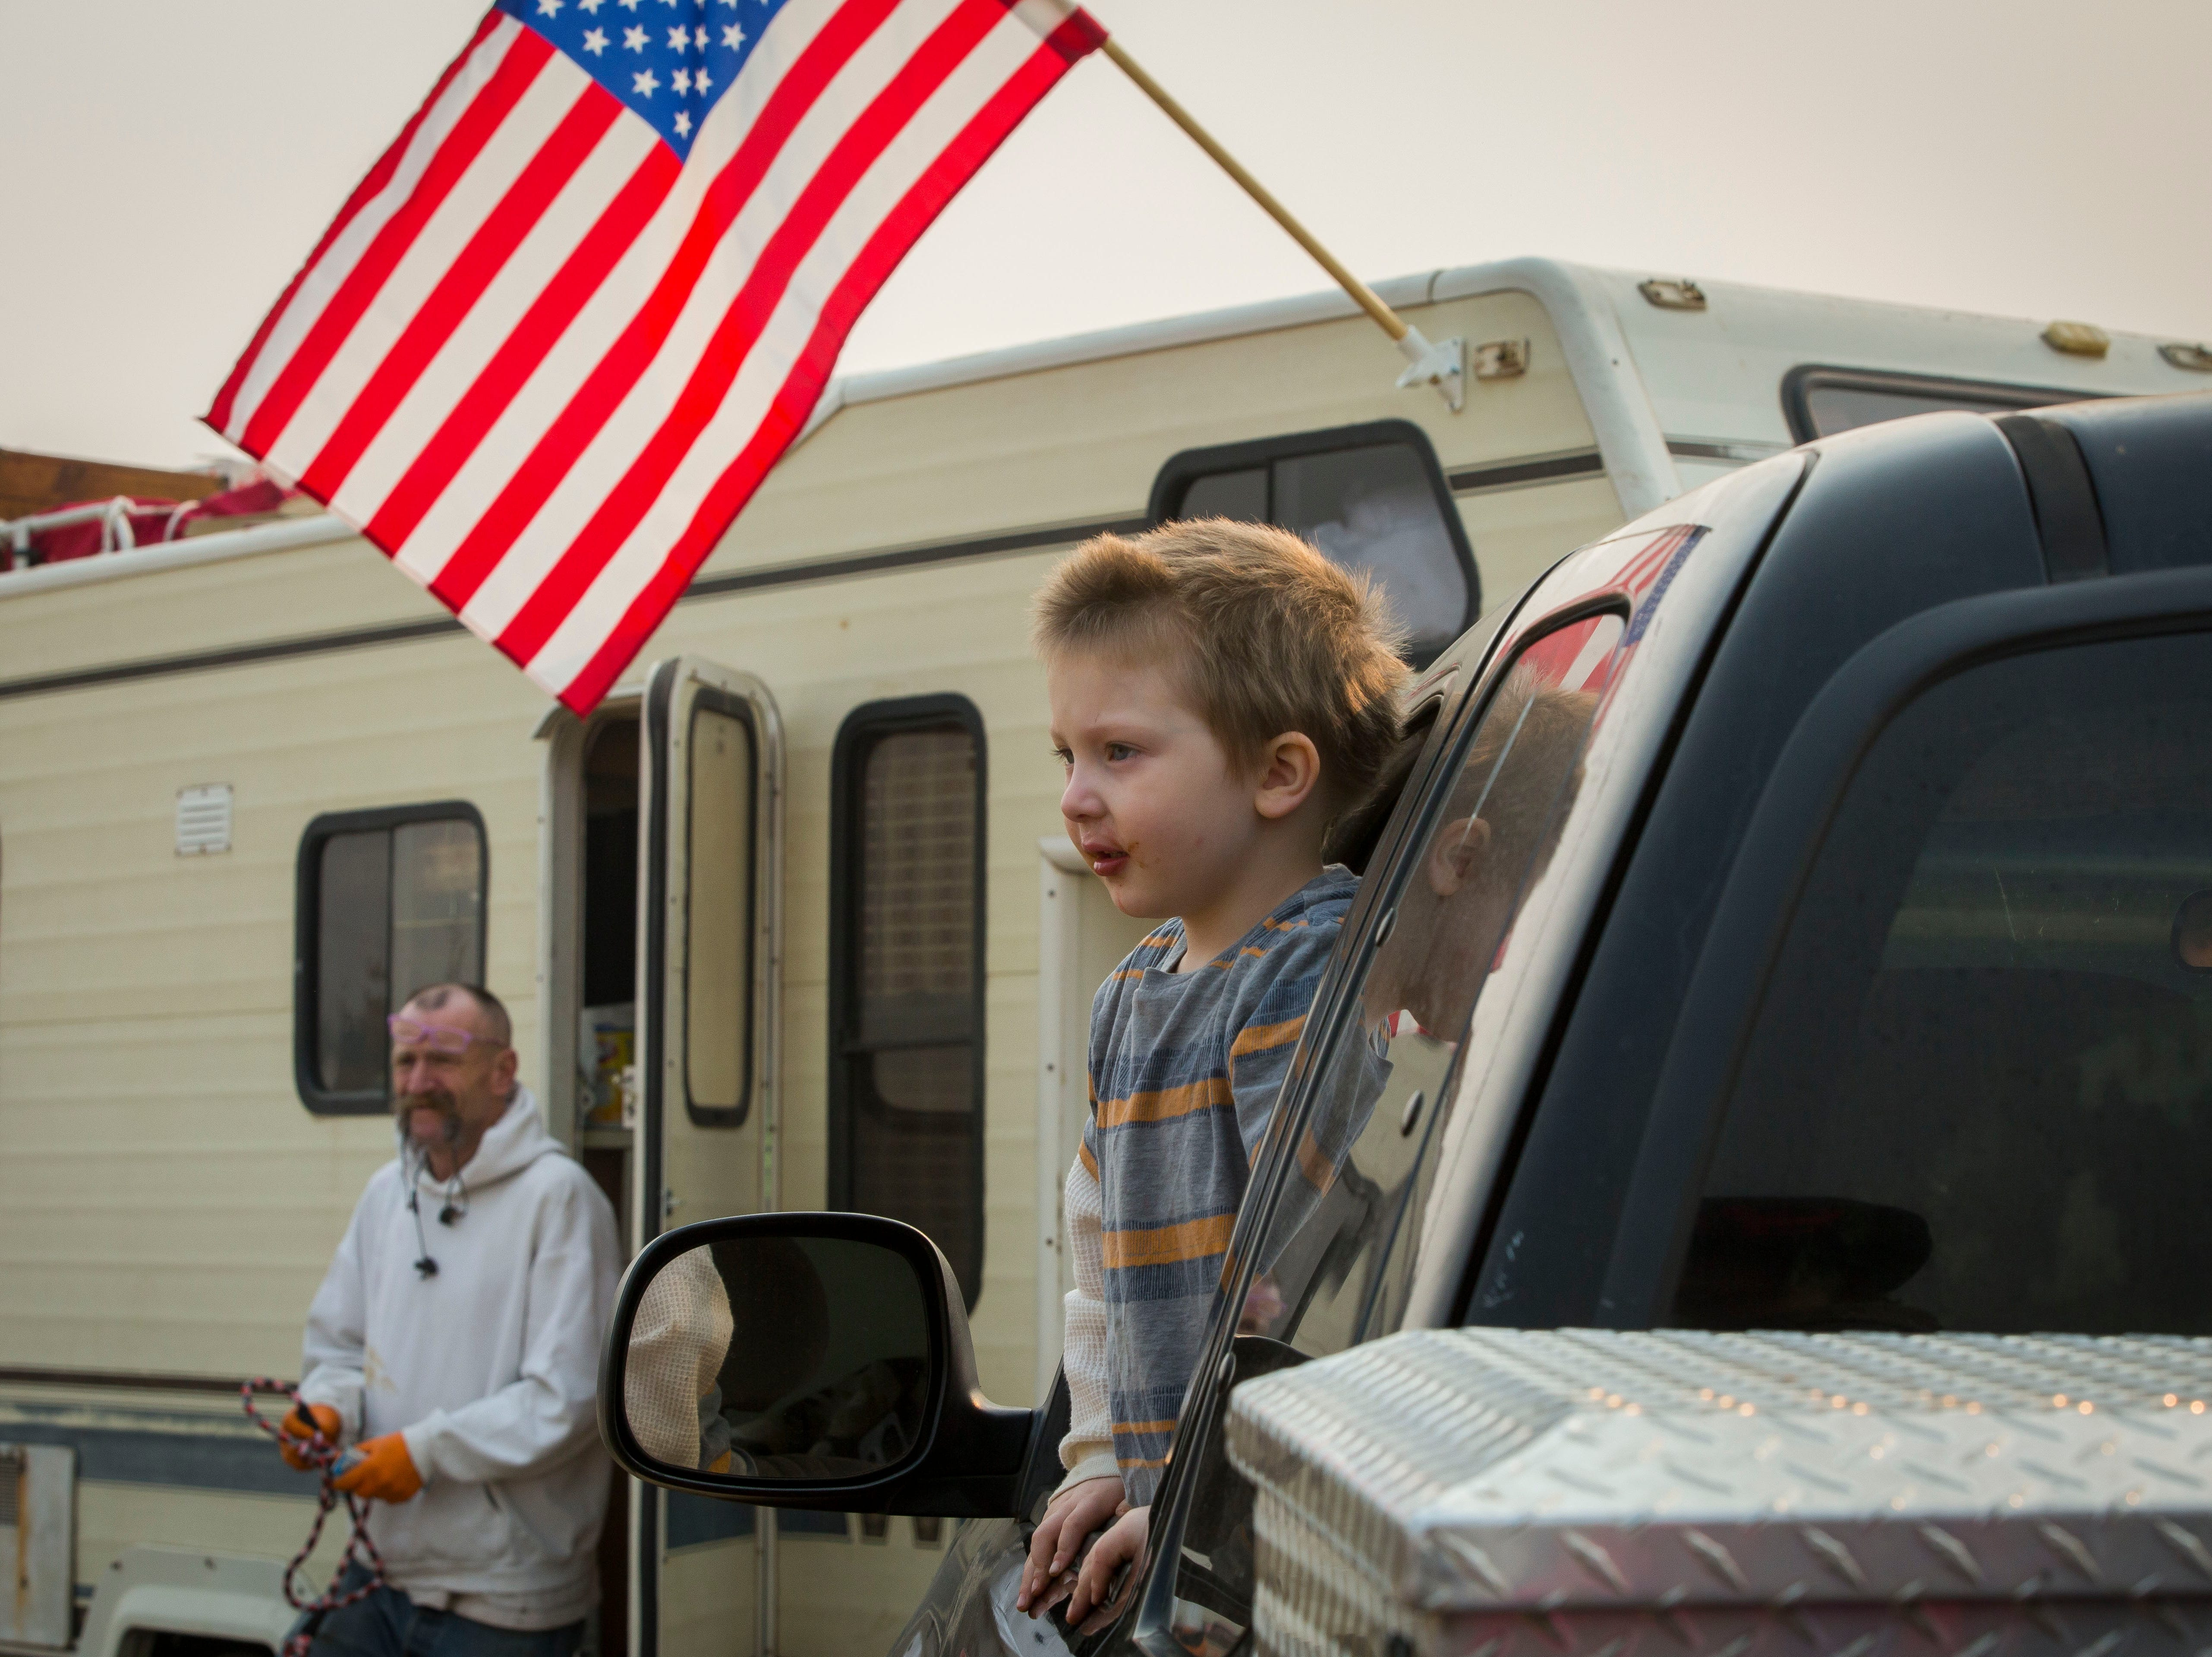 Bentley Belcher, 4, looks out of the window of the pick-up truck that has been loaned to his family as they camp at the Walmart in Chico, CA, Saturday Nov. 17, 2018. The Belcher family lost their home and vehicles to the Camp Fire.